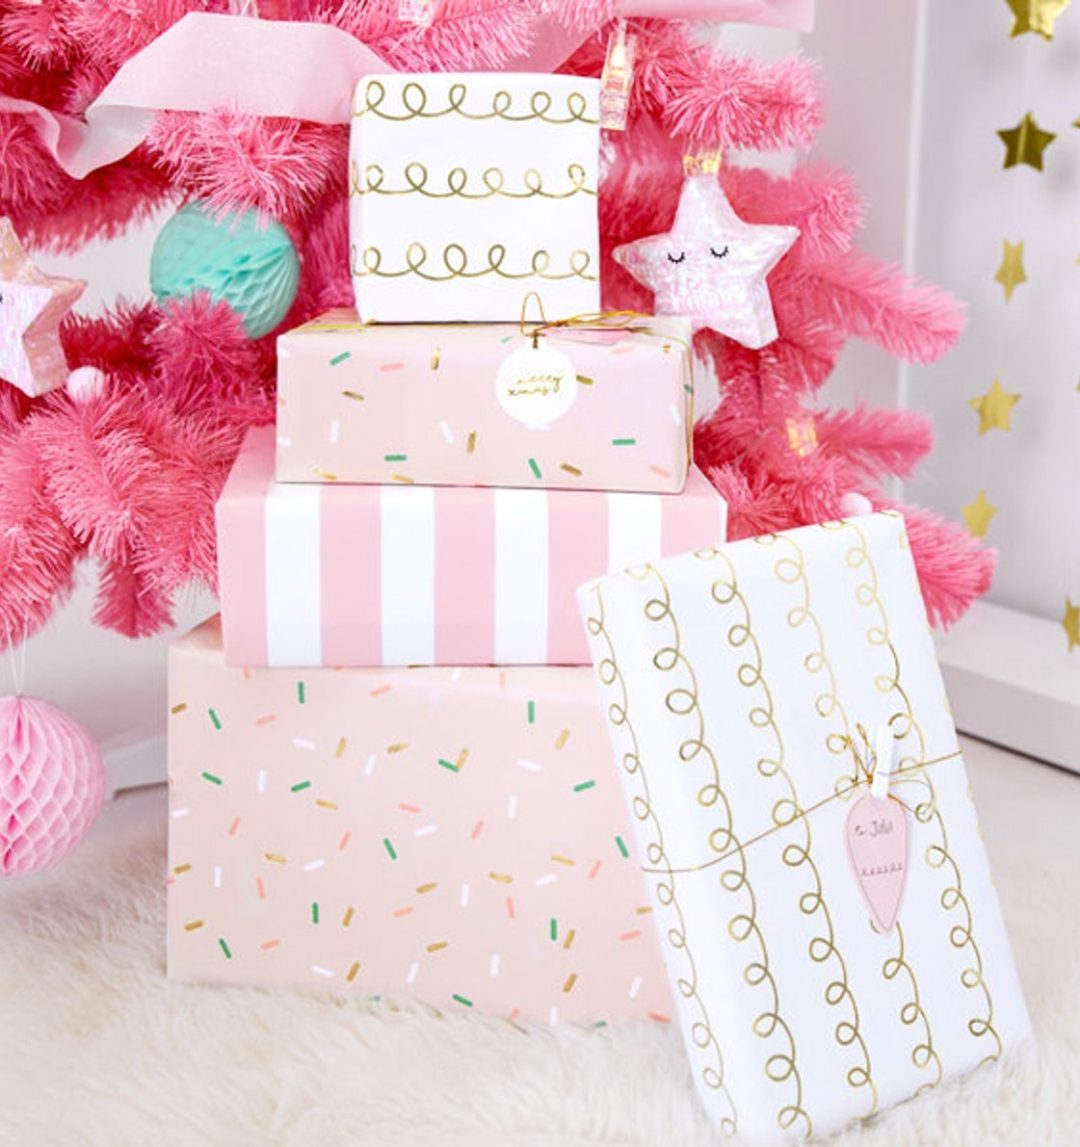 Cute pink Christmas wrapping paper